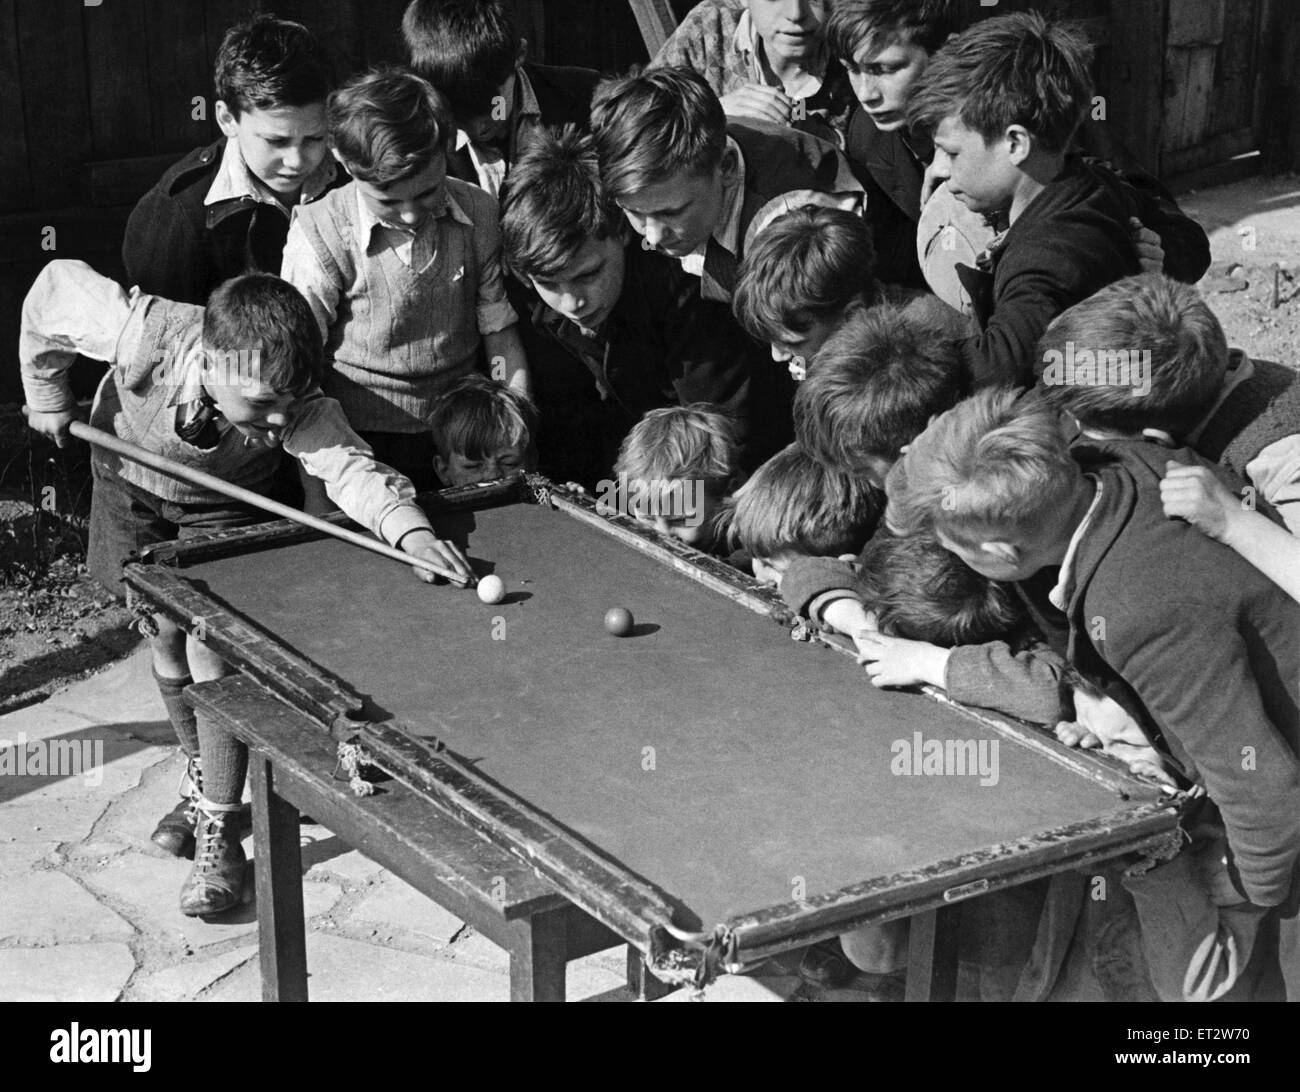 Sixteen tousled heads bend over a rickety billiard table at the Camel club, Bethnal Green, as 11 year old Ronnie - Stock Image